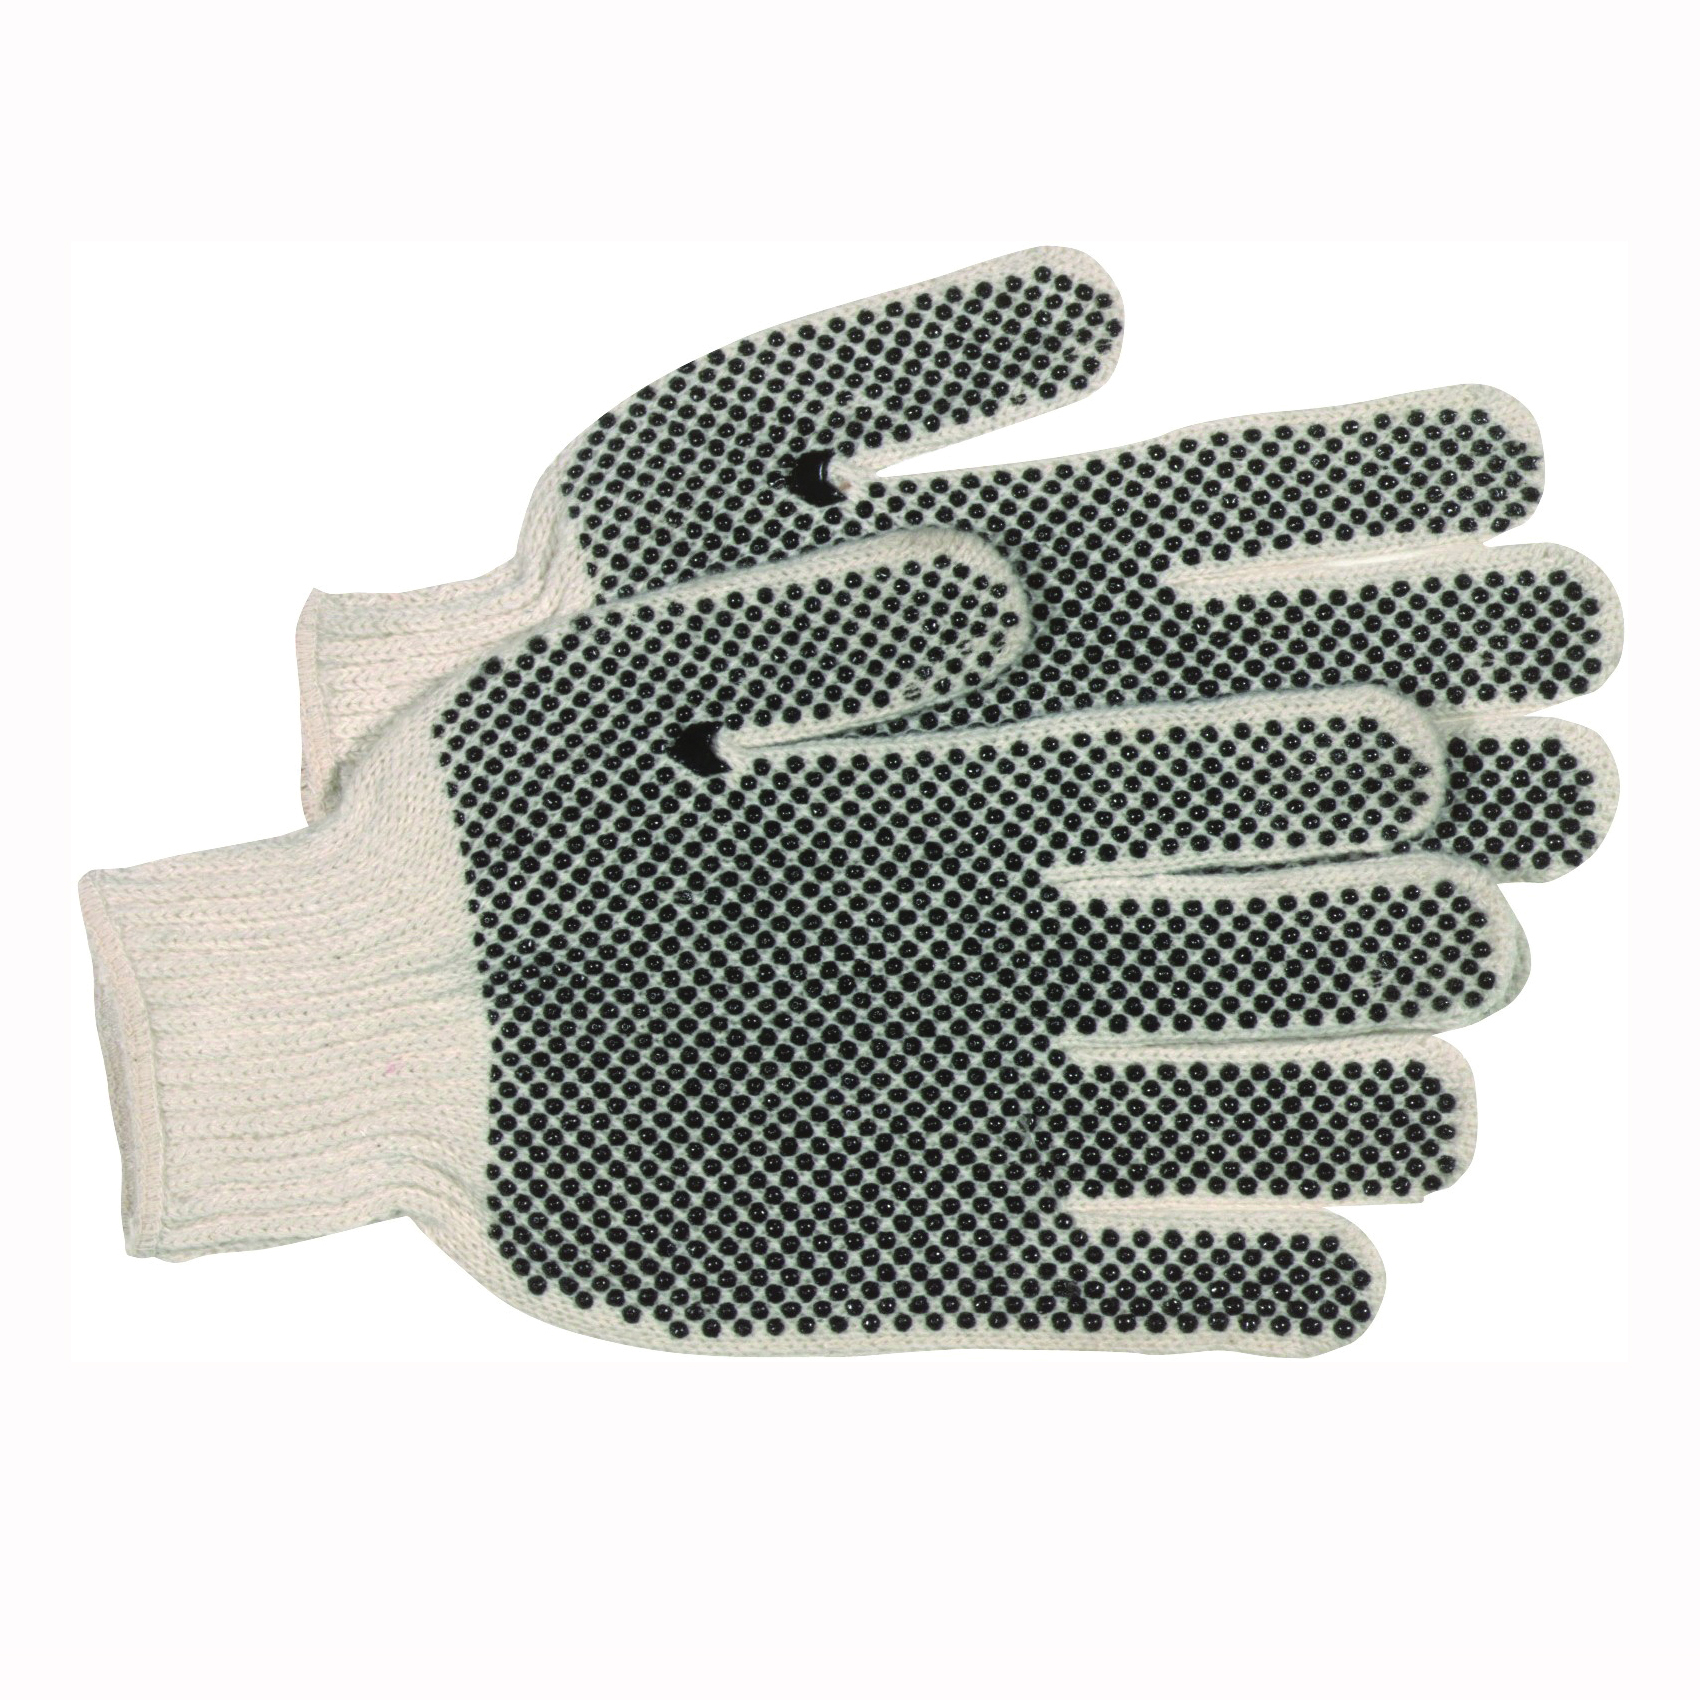 Picture of BOSS 5522L Reversible Protective Gloves, L, Knit Wrist Cuff, Cotton/Polyester, Black/White